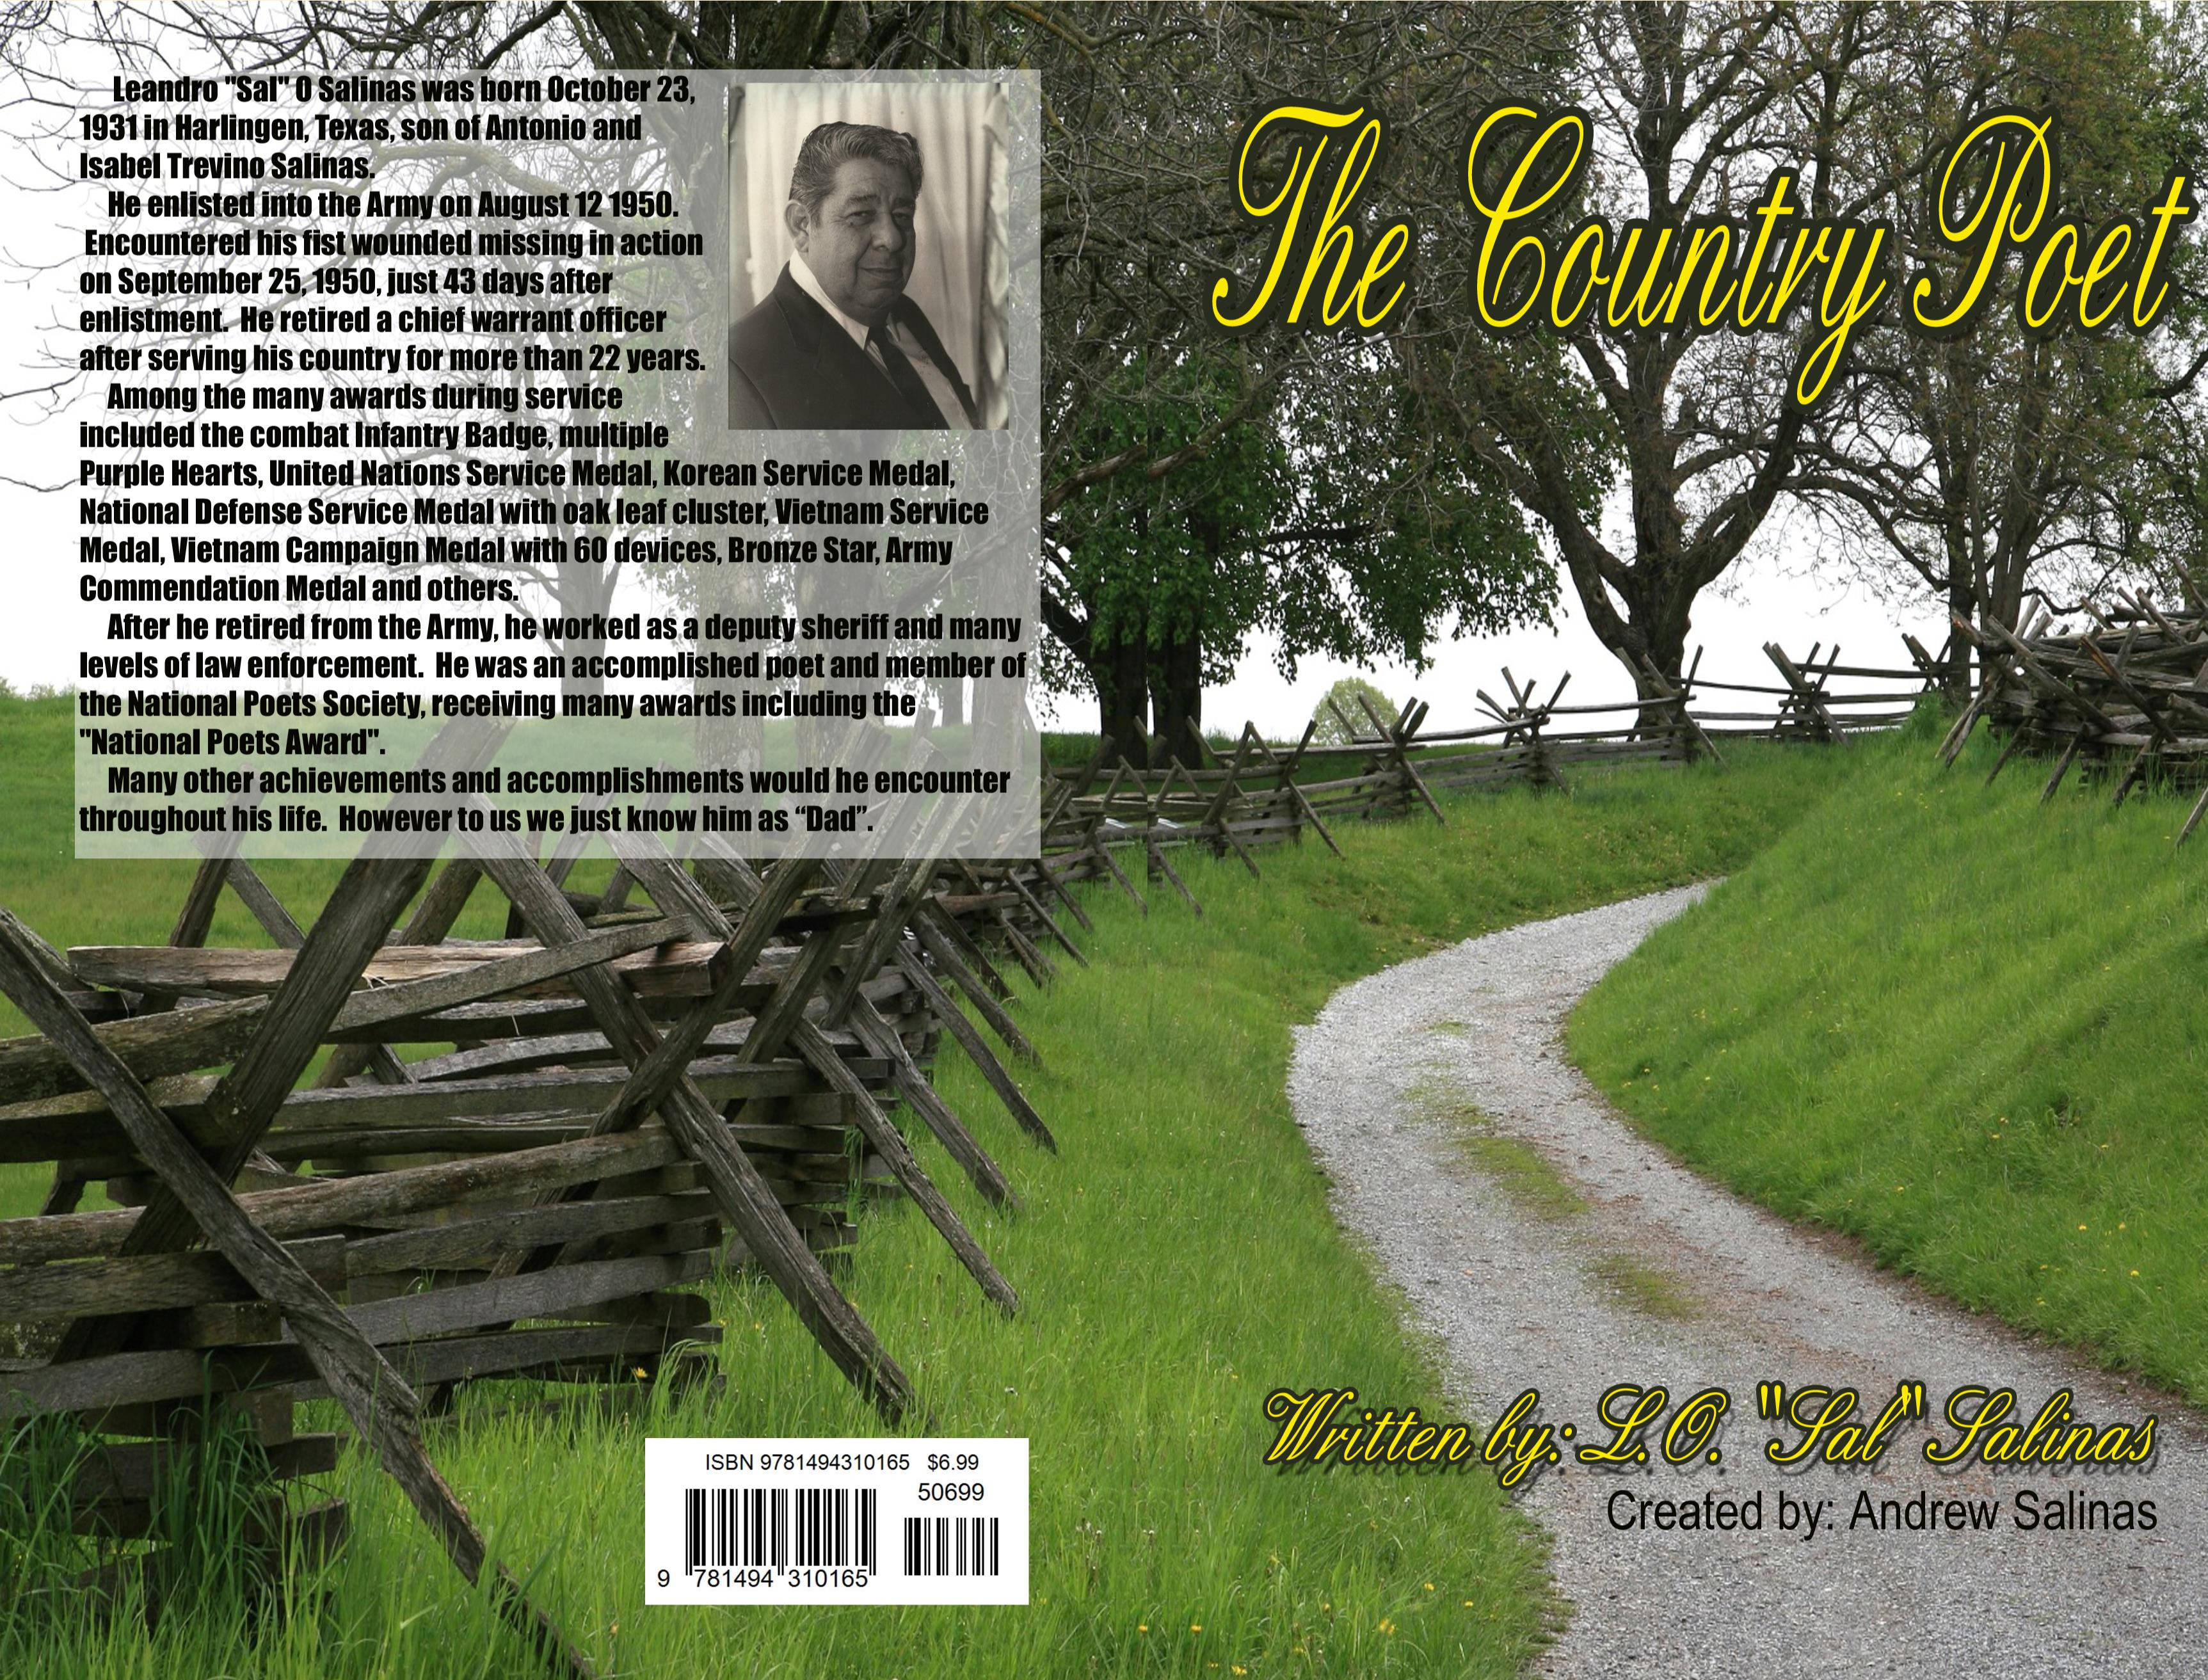 The Country Poet - LOSal Salinas - Spiral cover image